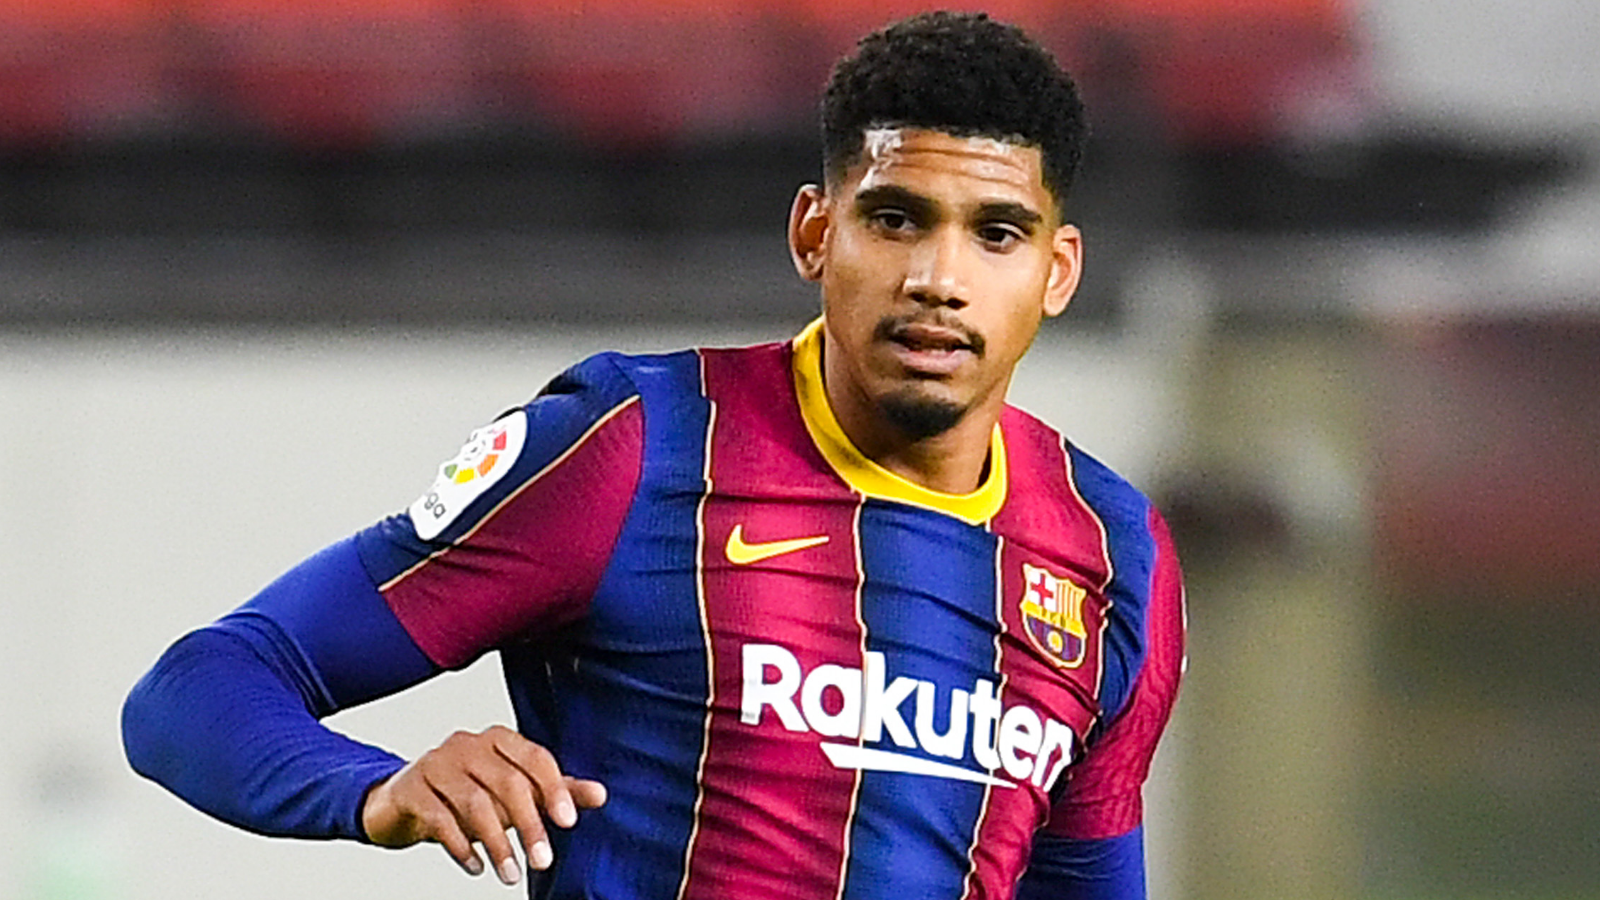 'I hope to be at Barcelona for many years' - Araujo eager to extend stay at Camp Nou